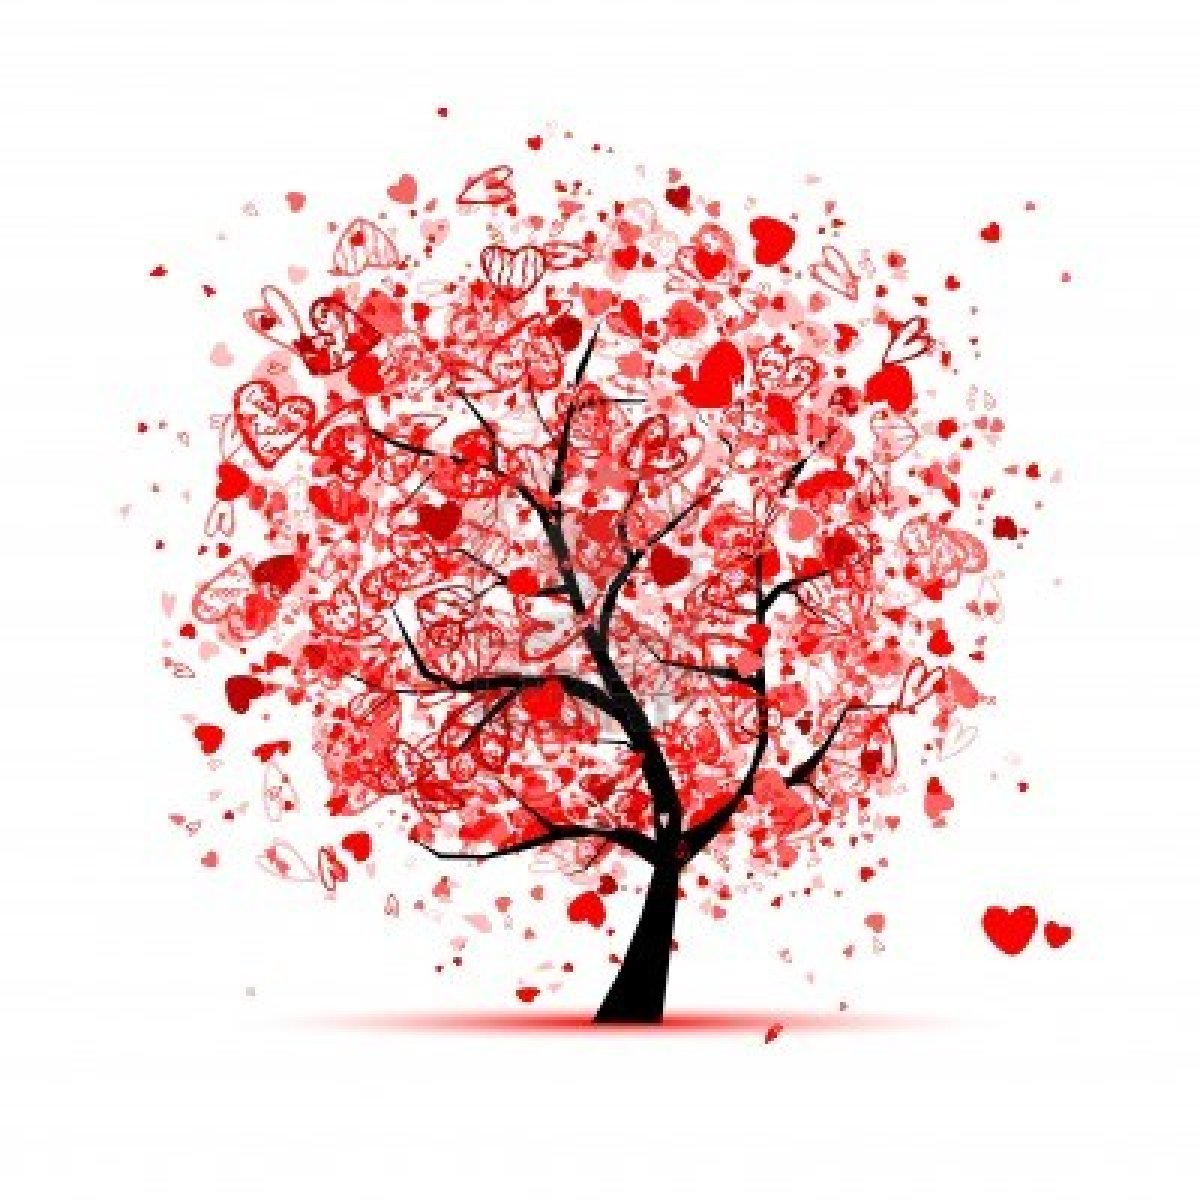 12016567 valentine tree with hearts for your design - 123rf image gratuite ...